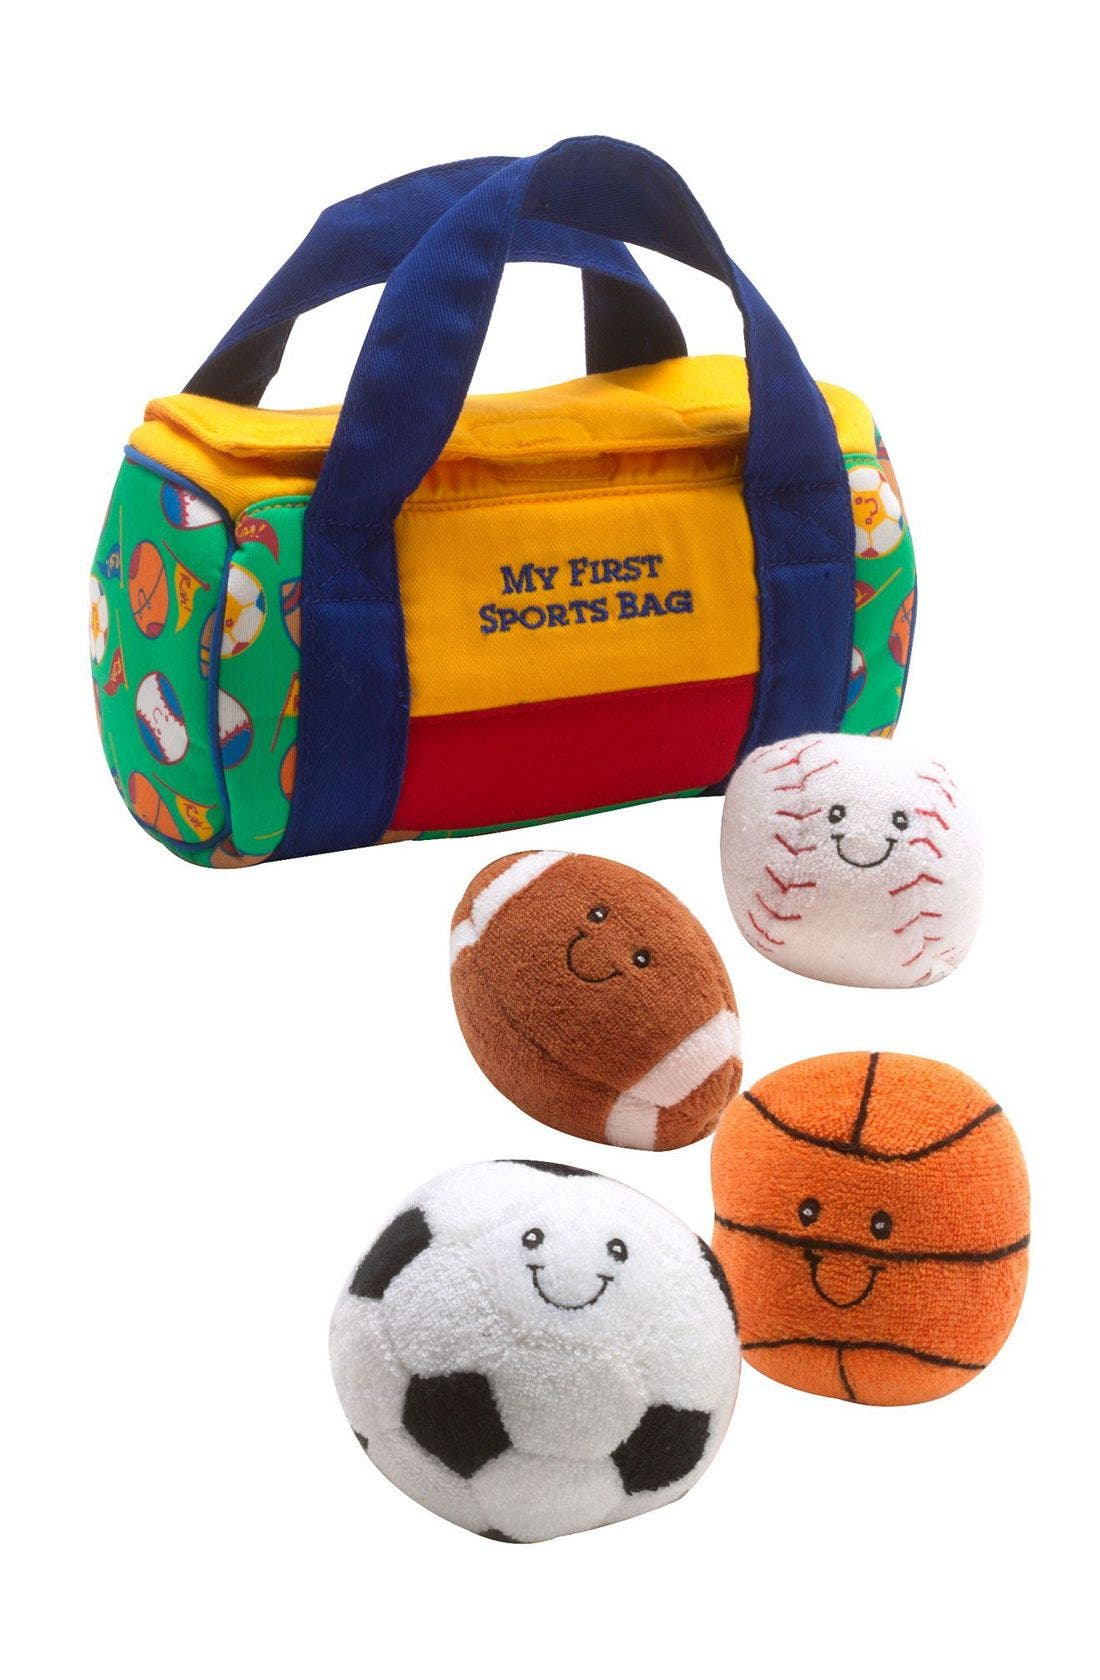 Alternate Image 1 Selected - Gund 'My First Sports Bag' Play Set